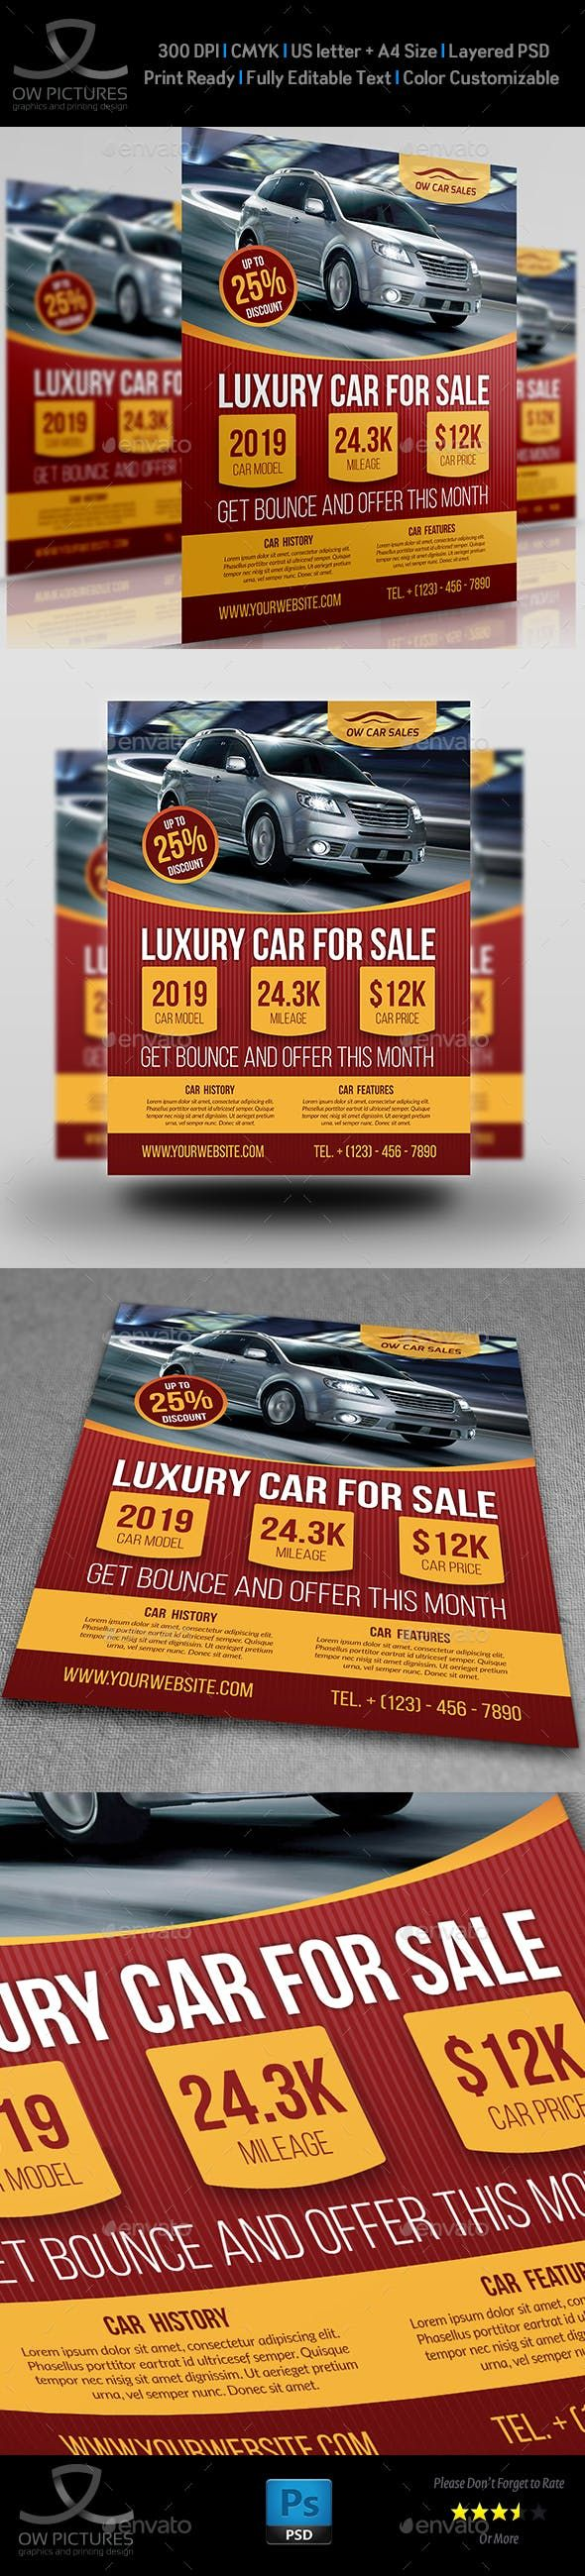 Car For Sale Flyer Template Vol 3 Photoshop Psd Modern Ai Flyer Sale Flyer Flyer Template Flyer Car for sale sign template